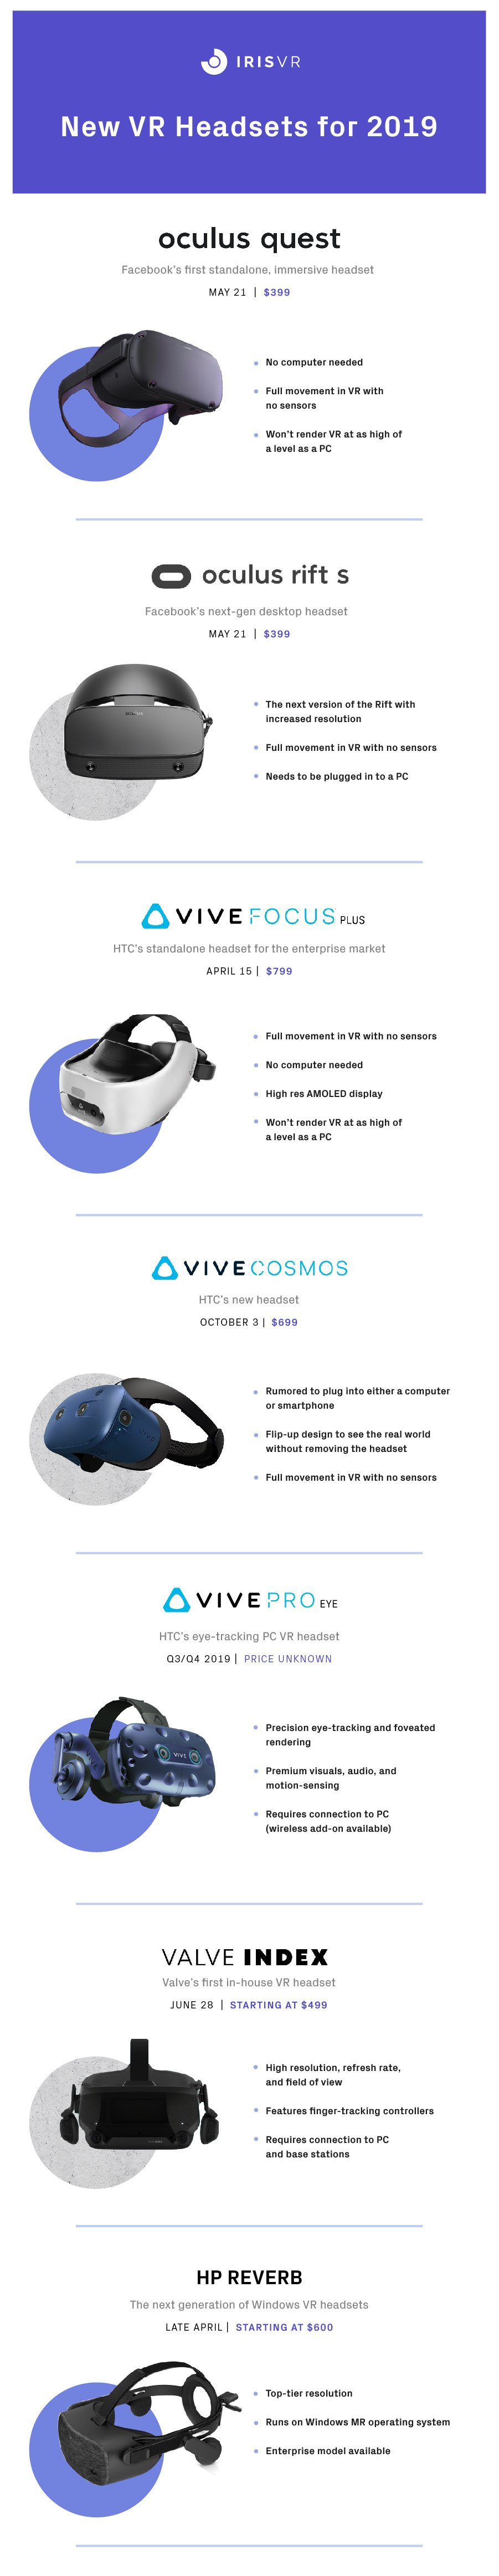 VR Headsets Infographic